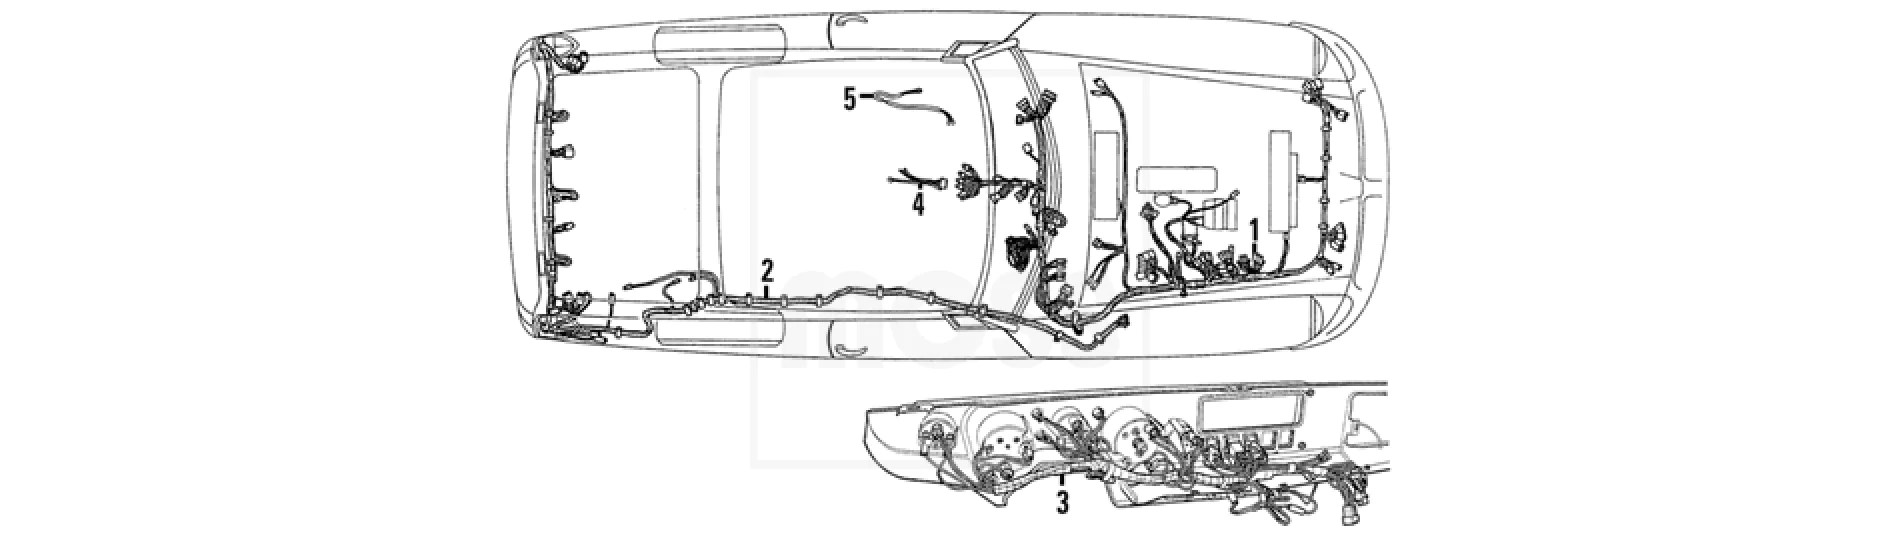 mgb c v8 electrical wiring looms fittings wiring harnesses mgb [ 1900 x 538 Pixel ]